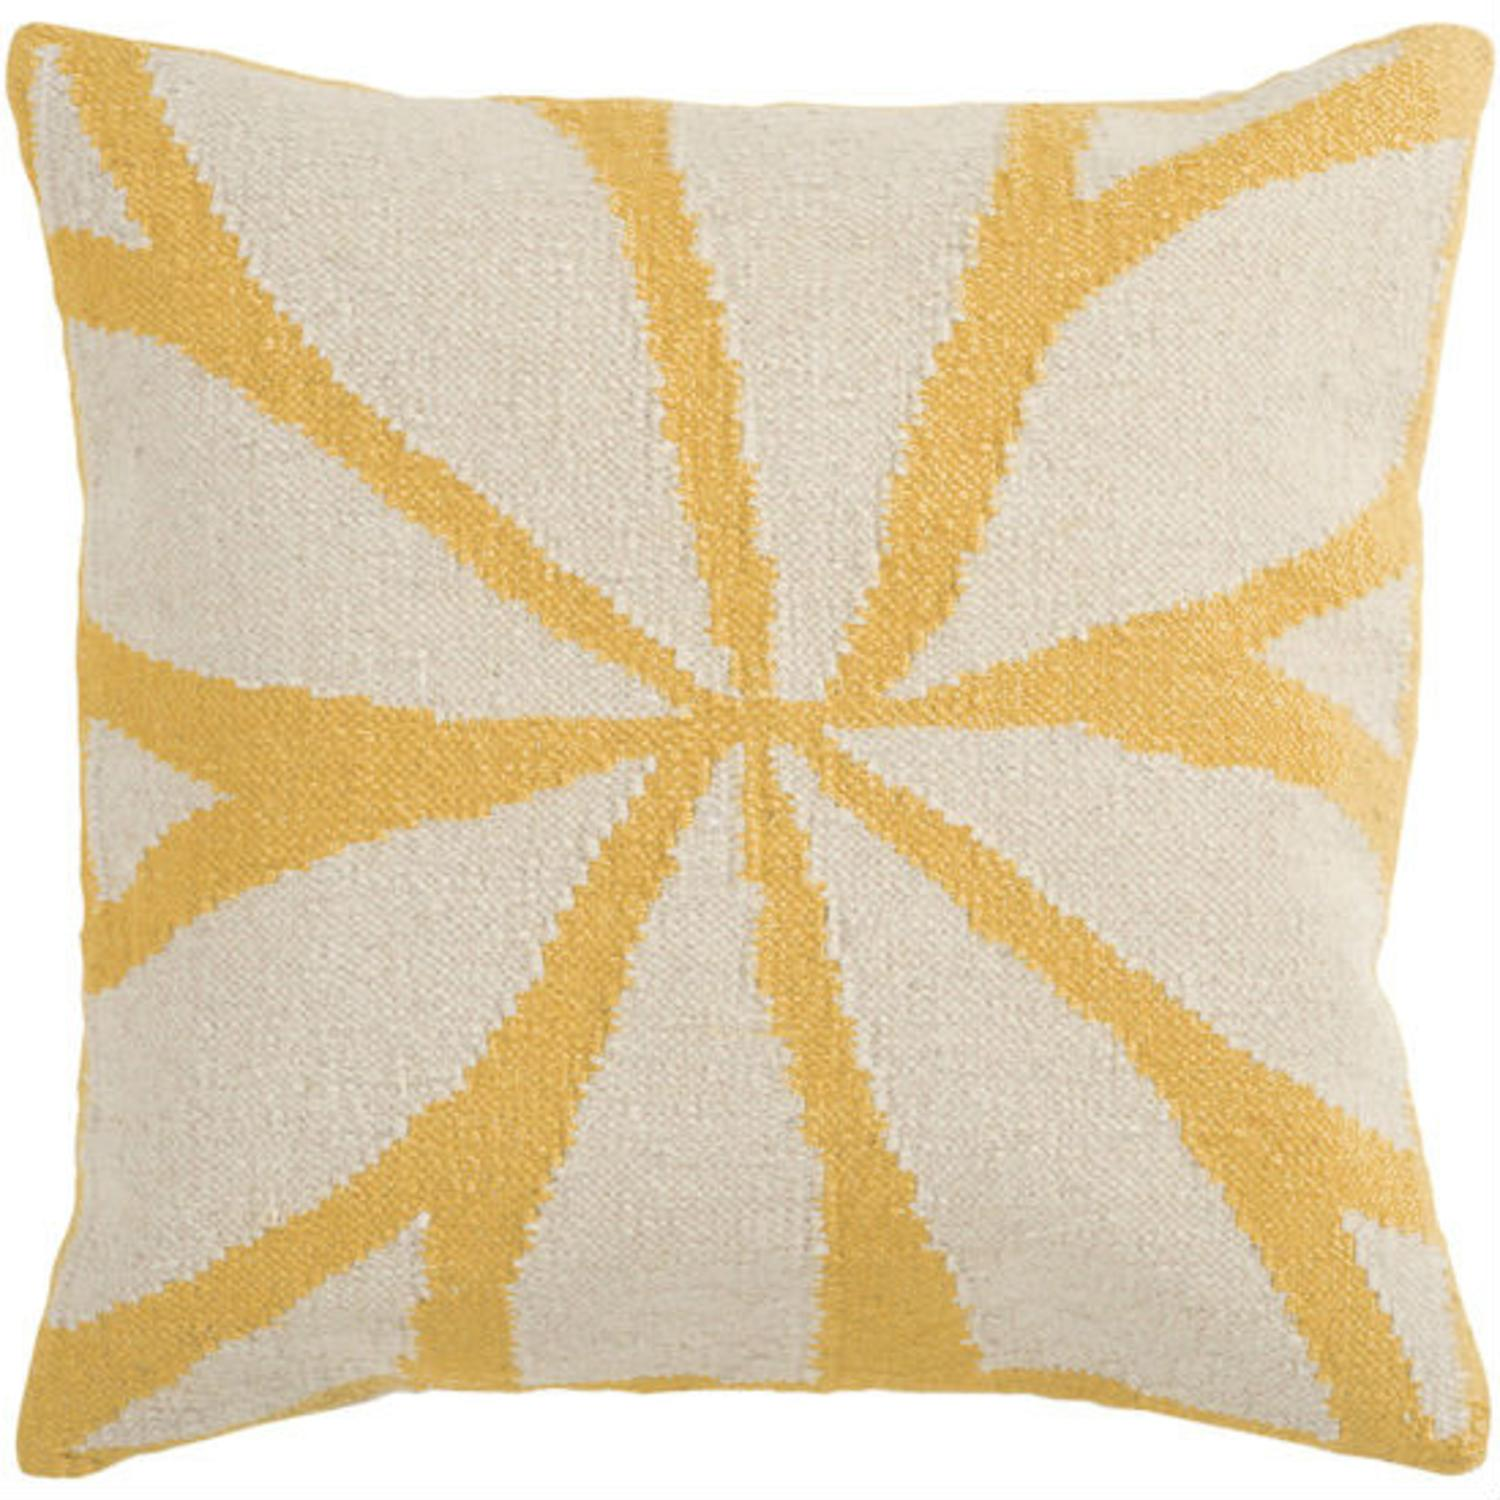 "18"" Golden Yellow and Ivory Asterid Decorative Throw Pillow"